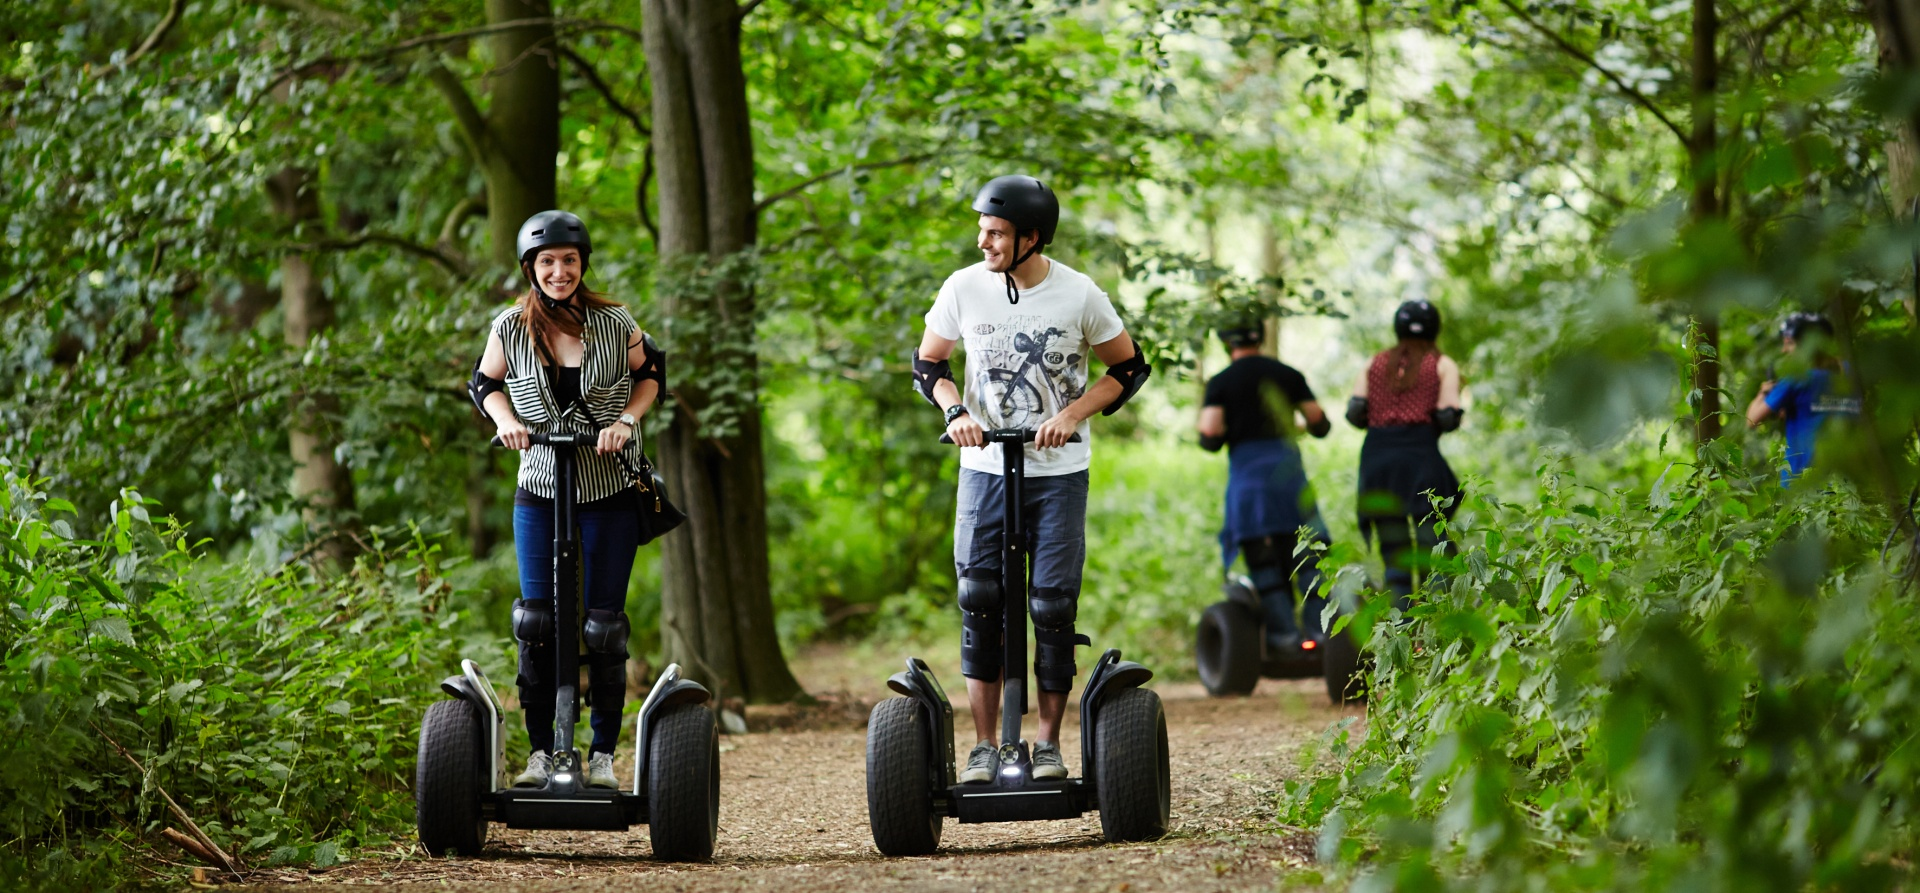 Segway Thrill - Weekday Experience